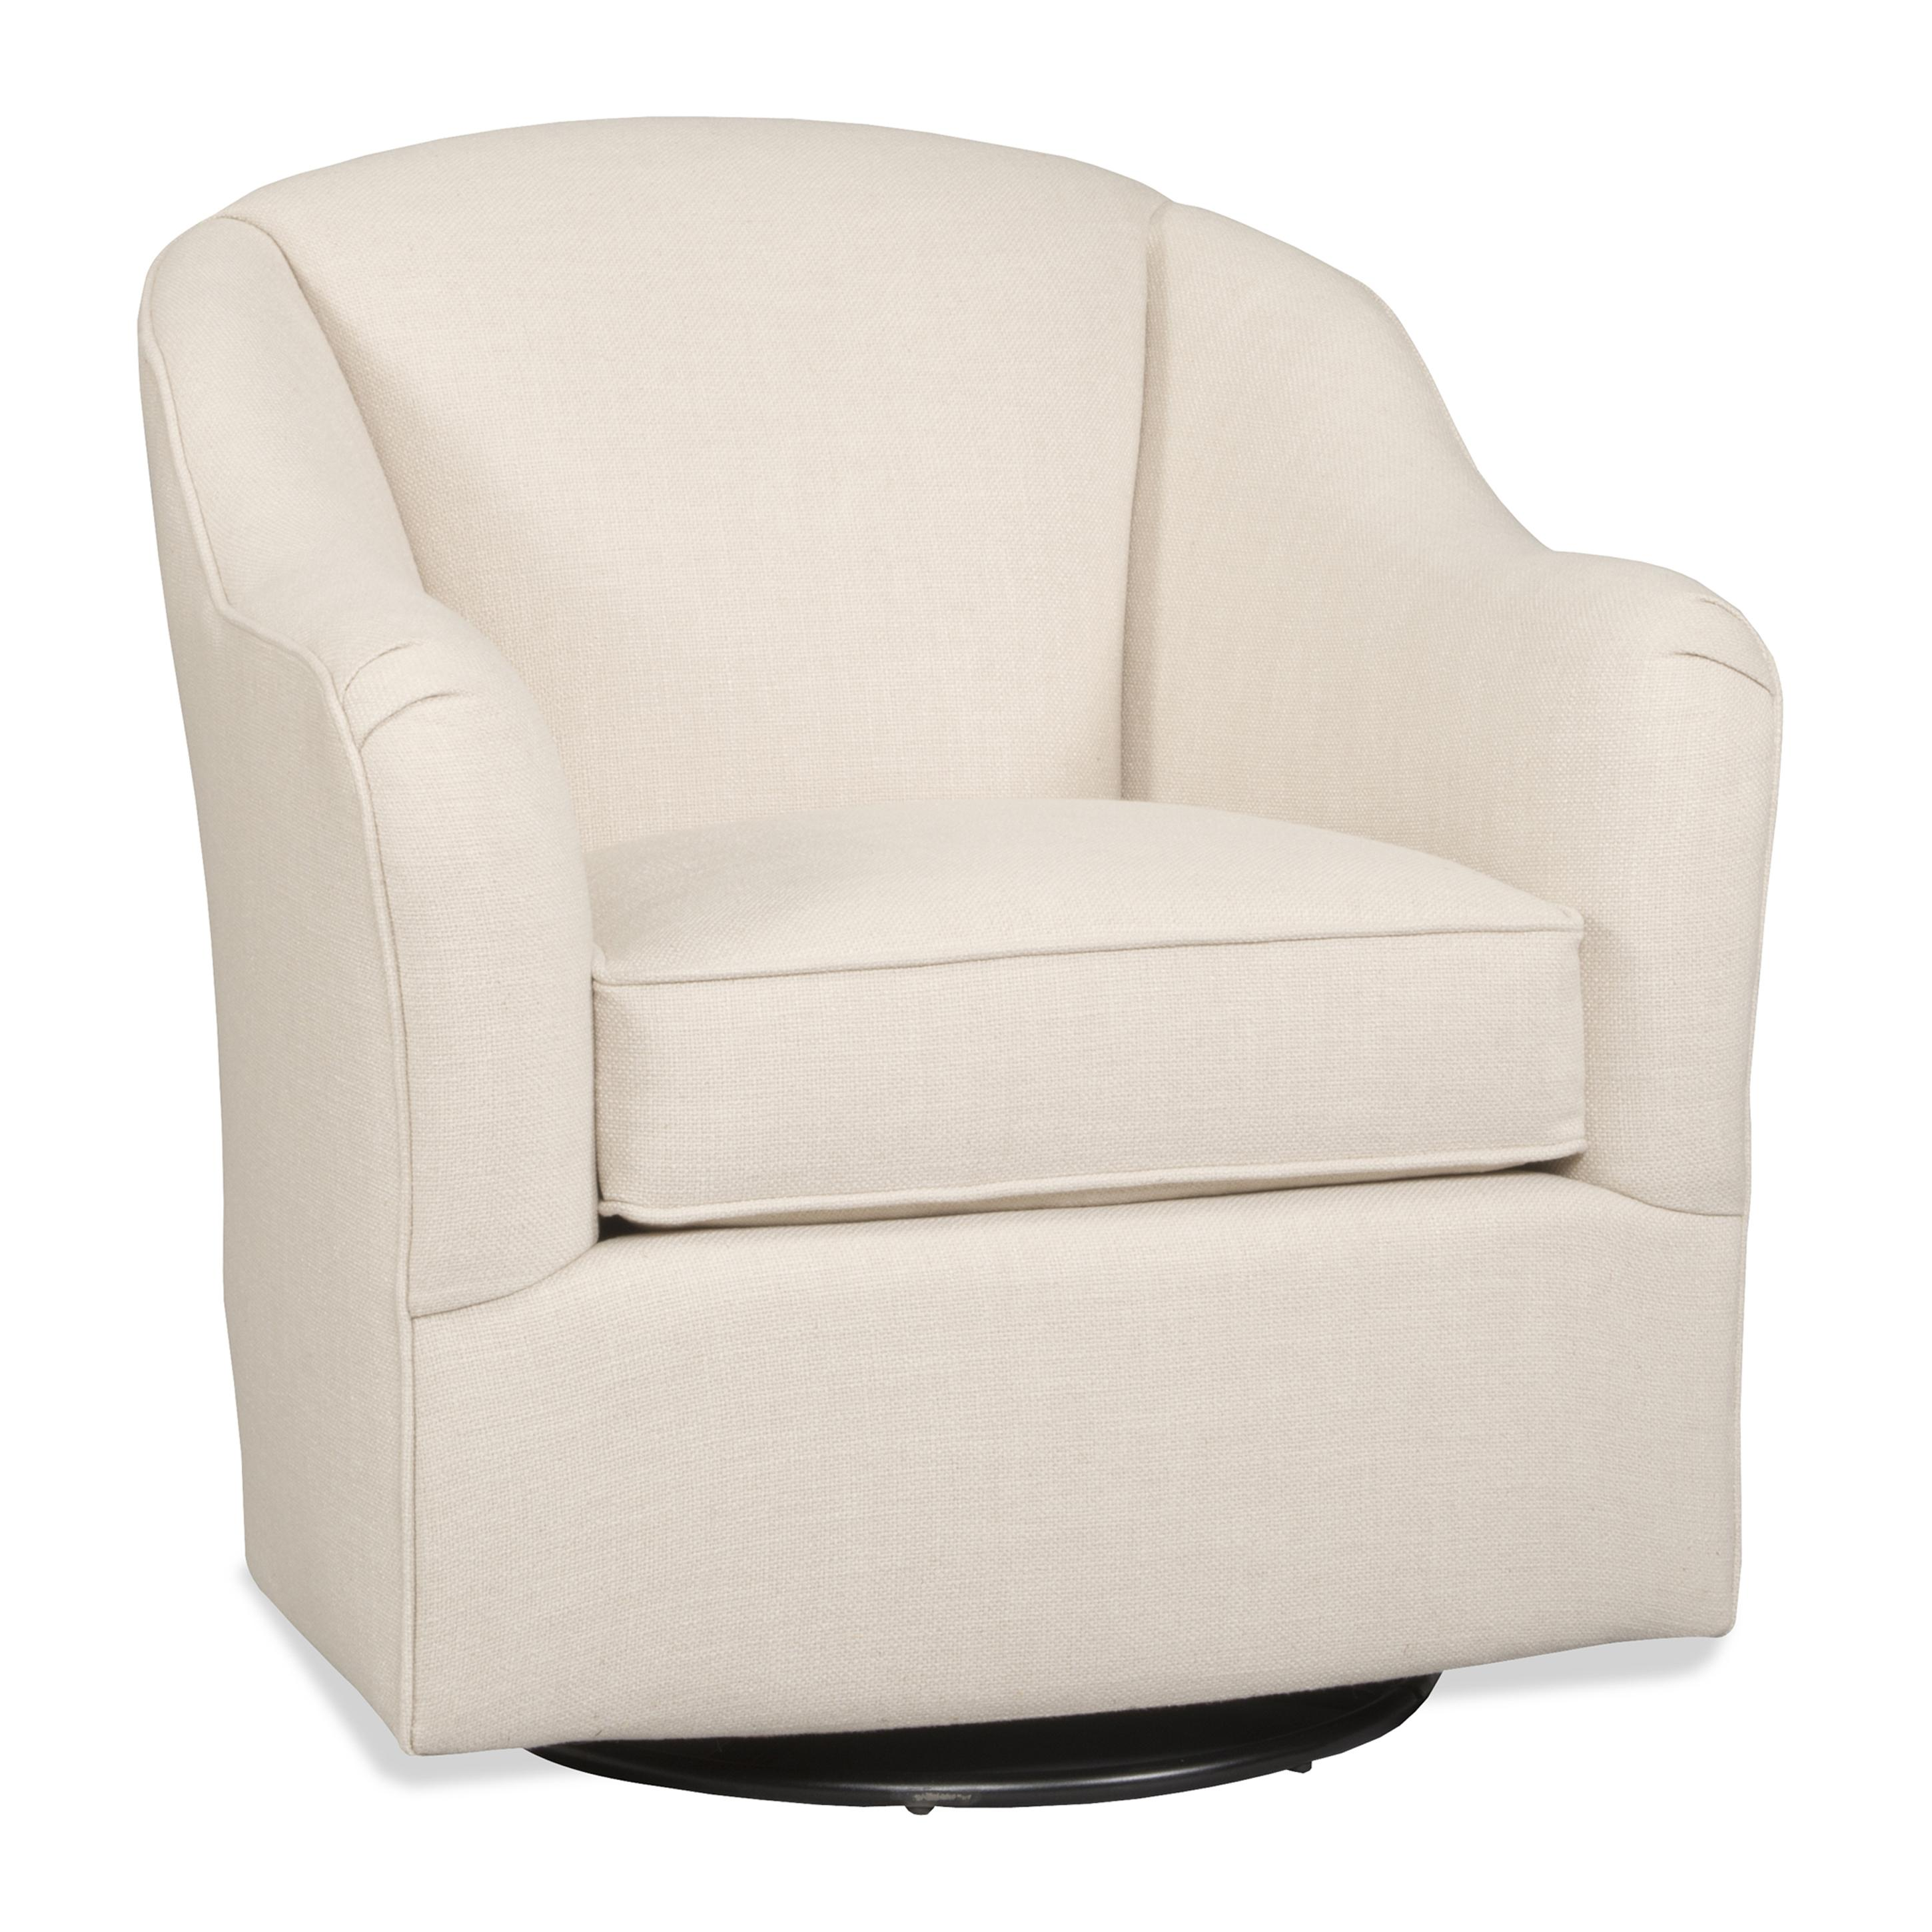 Casual Swivel Glider with English Arms